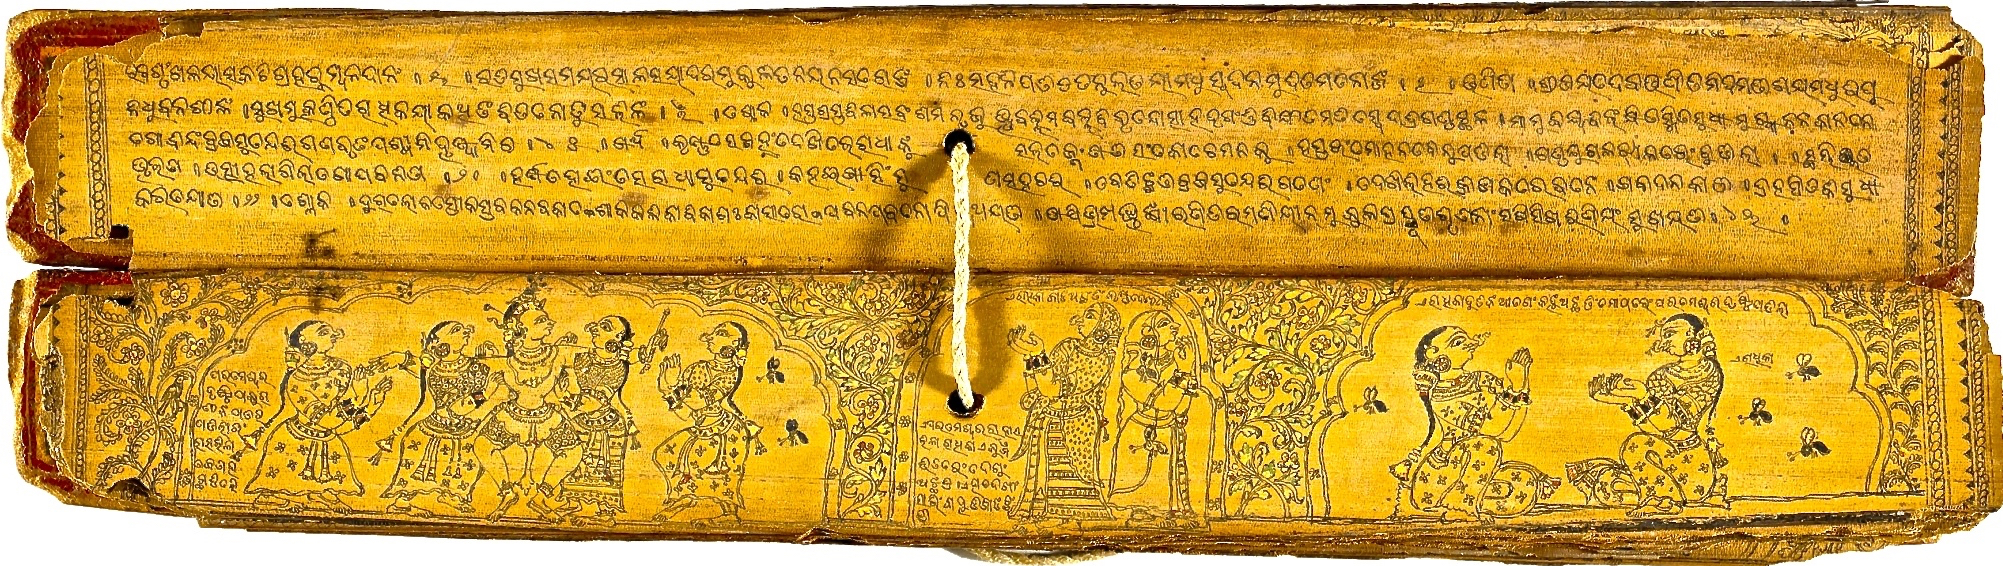 essays on hinduism from vedic to contemporary period Essays on hinduism hinduism is one of the most sublime religions of the world however, these are not the only essays on hinduism available at hinduwebsitecom please check other links in the menu above and the links in the right column.